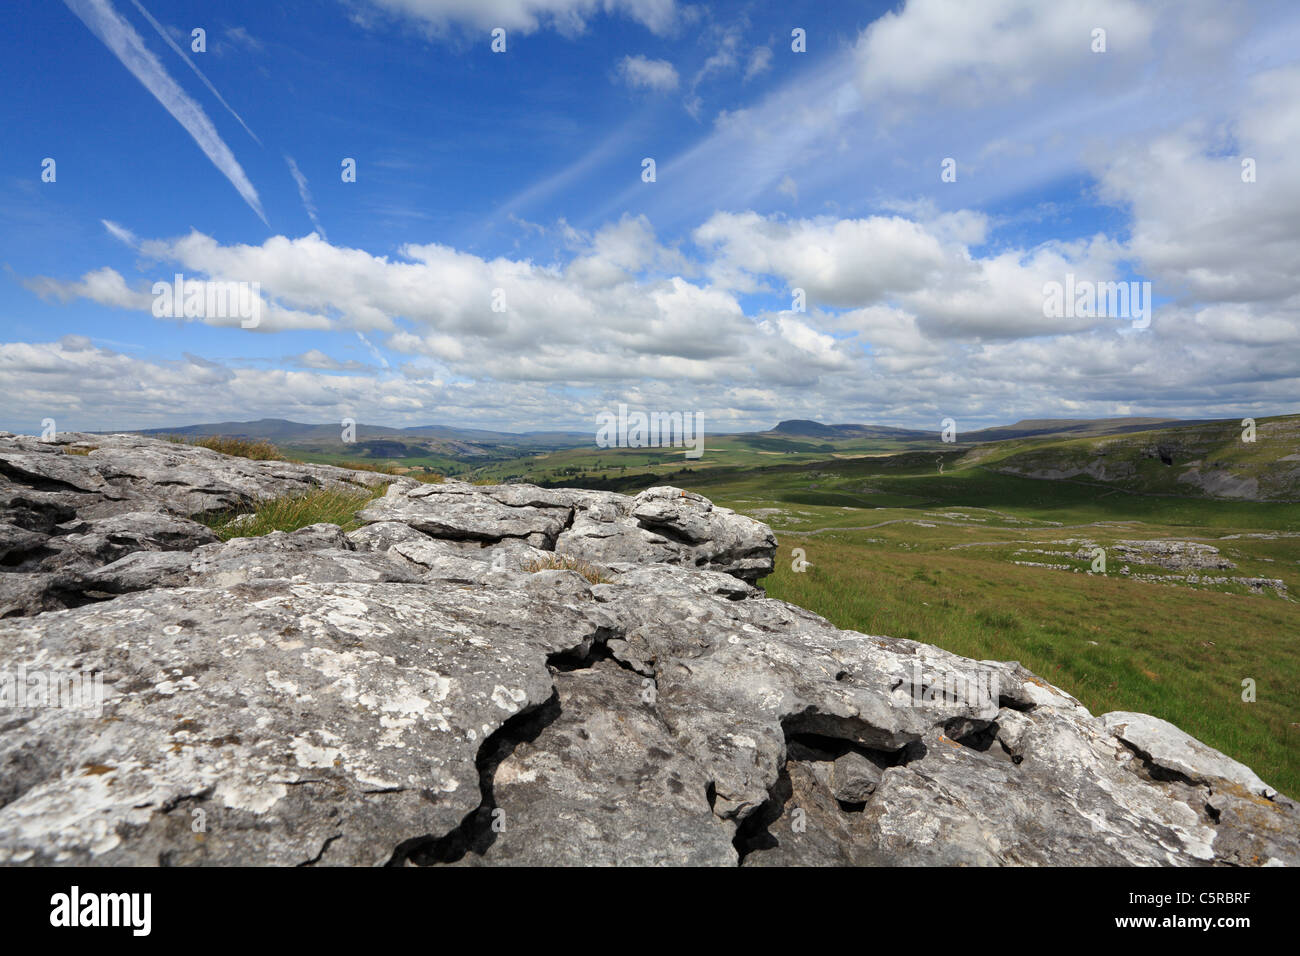 The three peaks of the Yorkshire Dales and limestone pavement. Victoria Cave can be seen on the right, all part - Stock Image